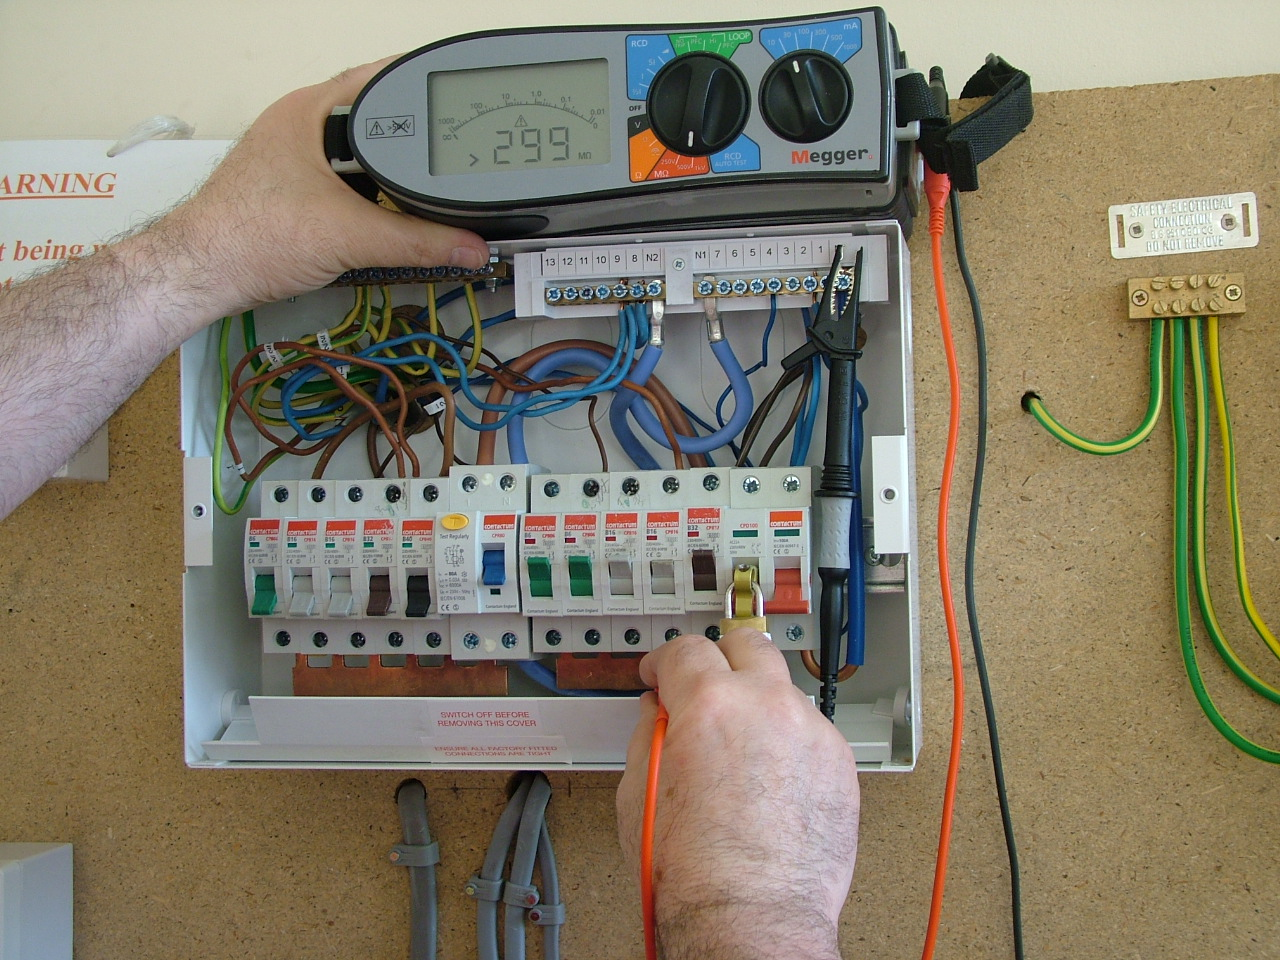 Electricianleeds Electrician Leeds Emergency Electrical Wiring And Circuit Breakers Inspection Testing